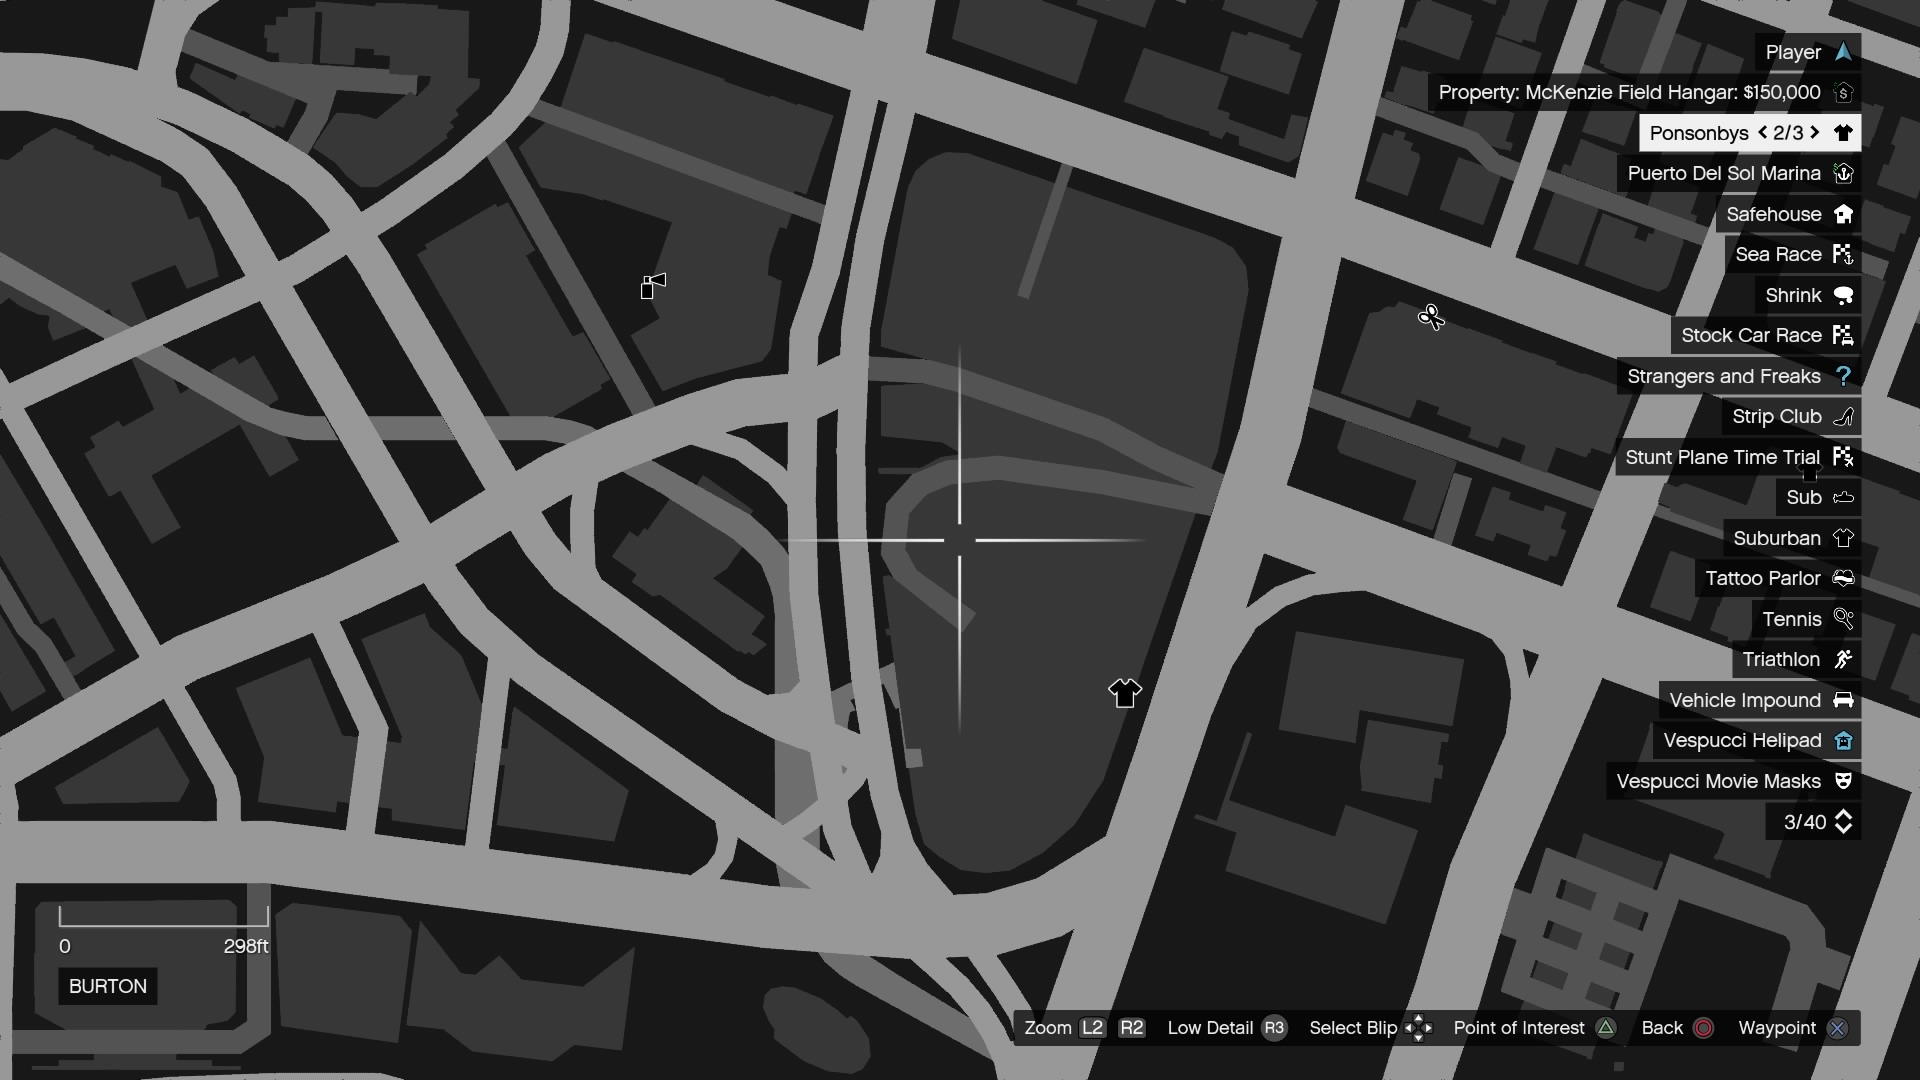 Spaceship Parts In Grand Theft Auto 5 - More information